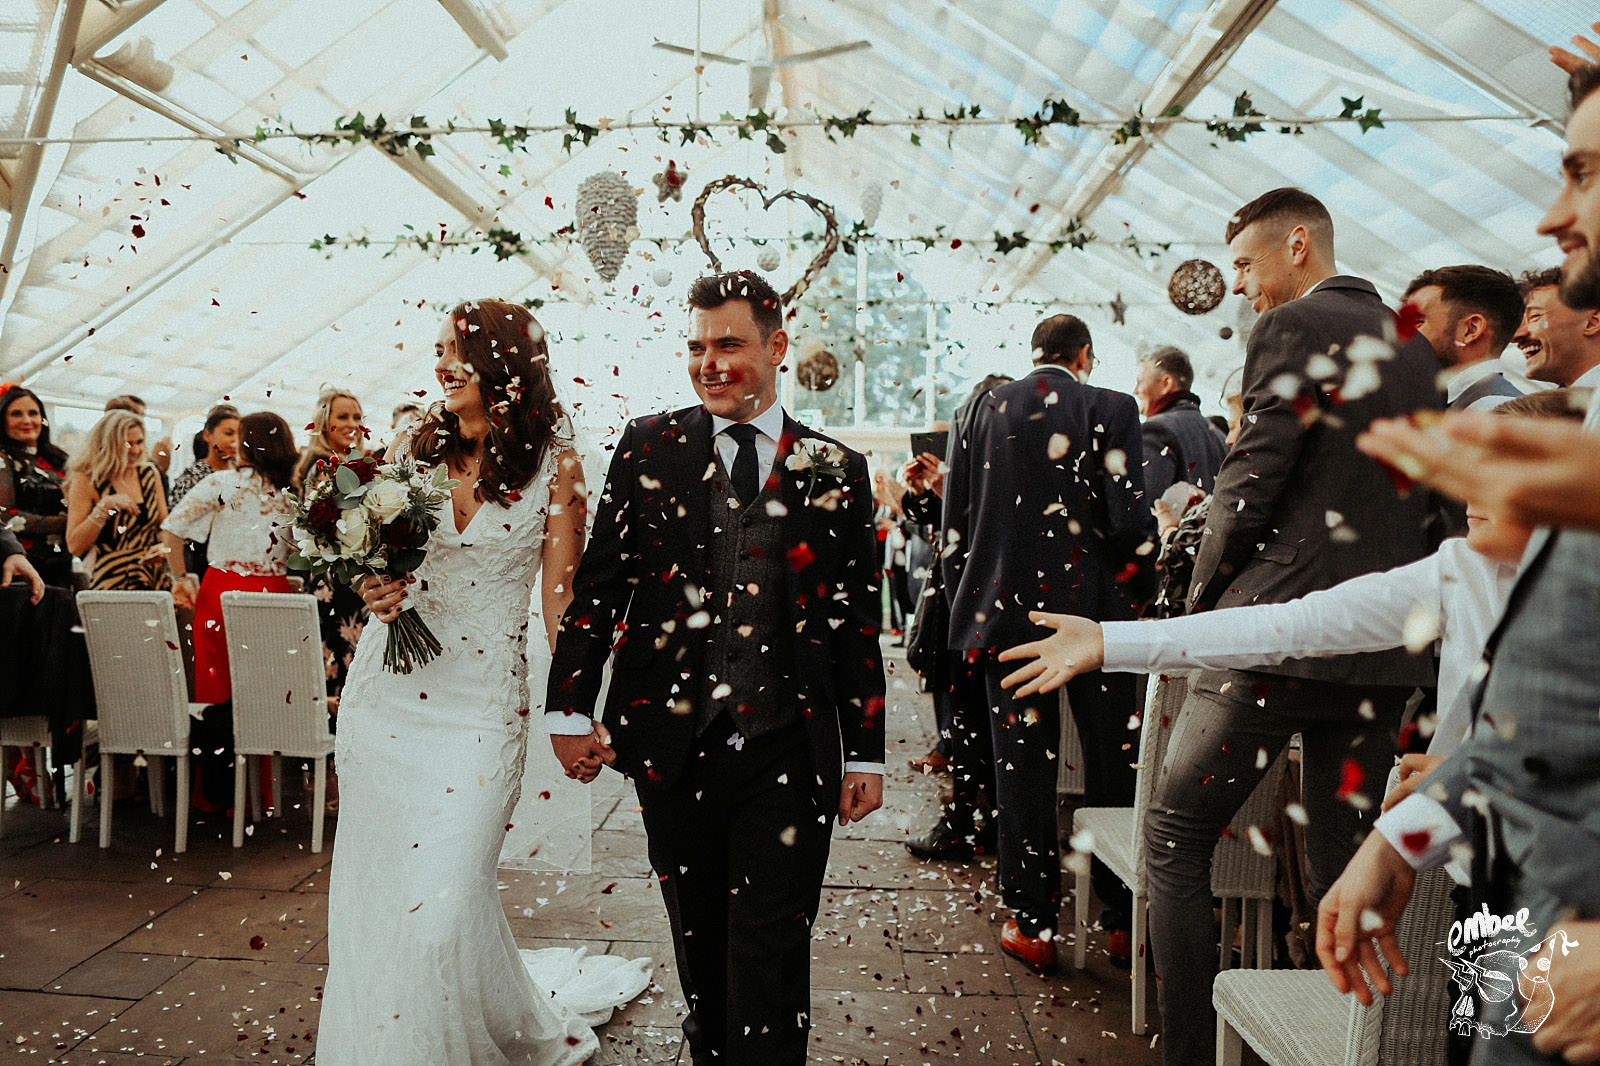 bride and groom walking down the aisle getting confetti thrown on them